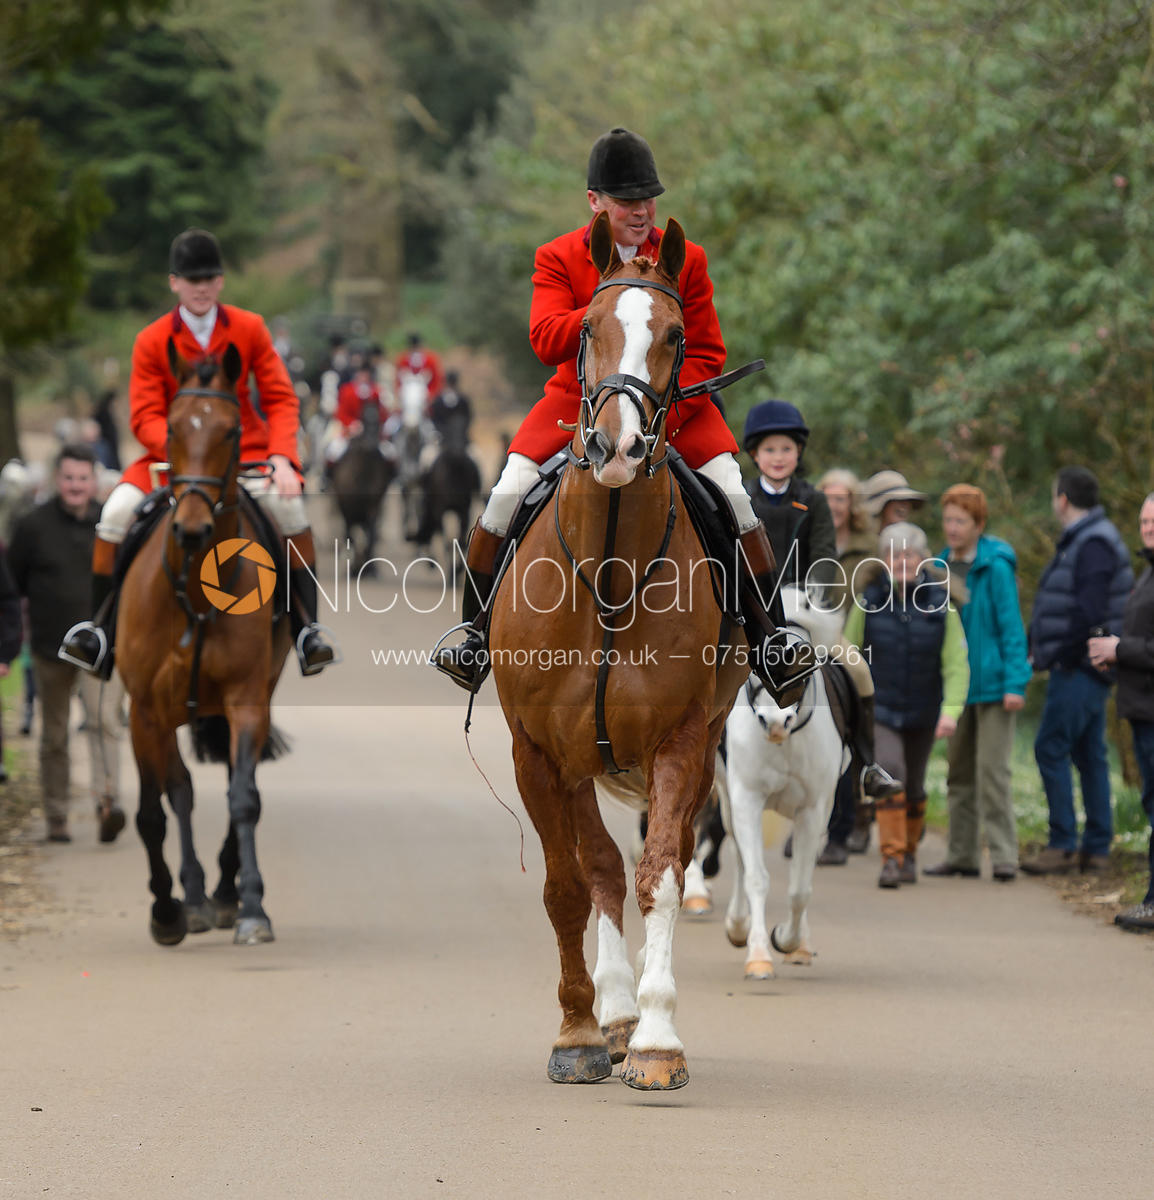 John Holliday arriving at the meet - The South Shropshire and Belvoir Hunts at Belvoir Castle 11/3/17